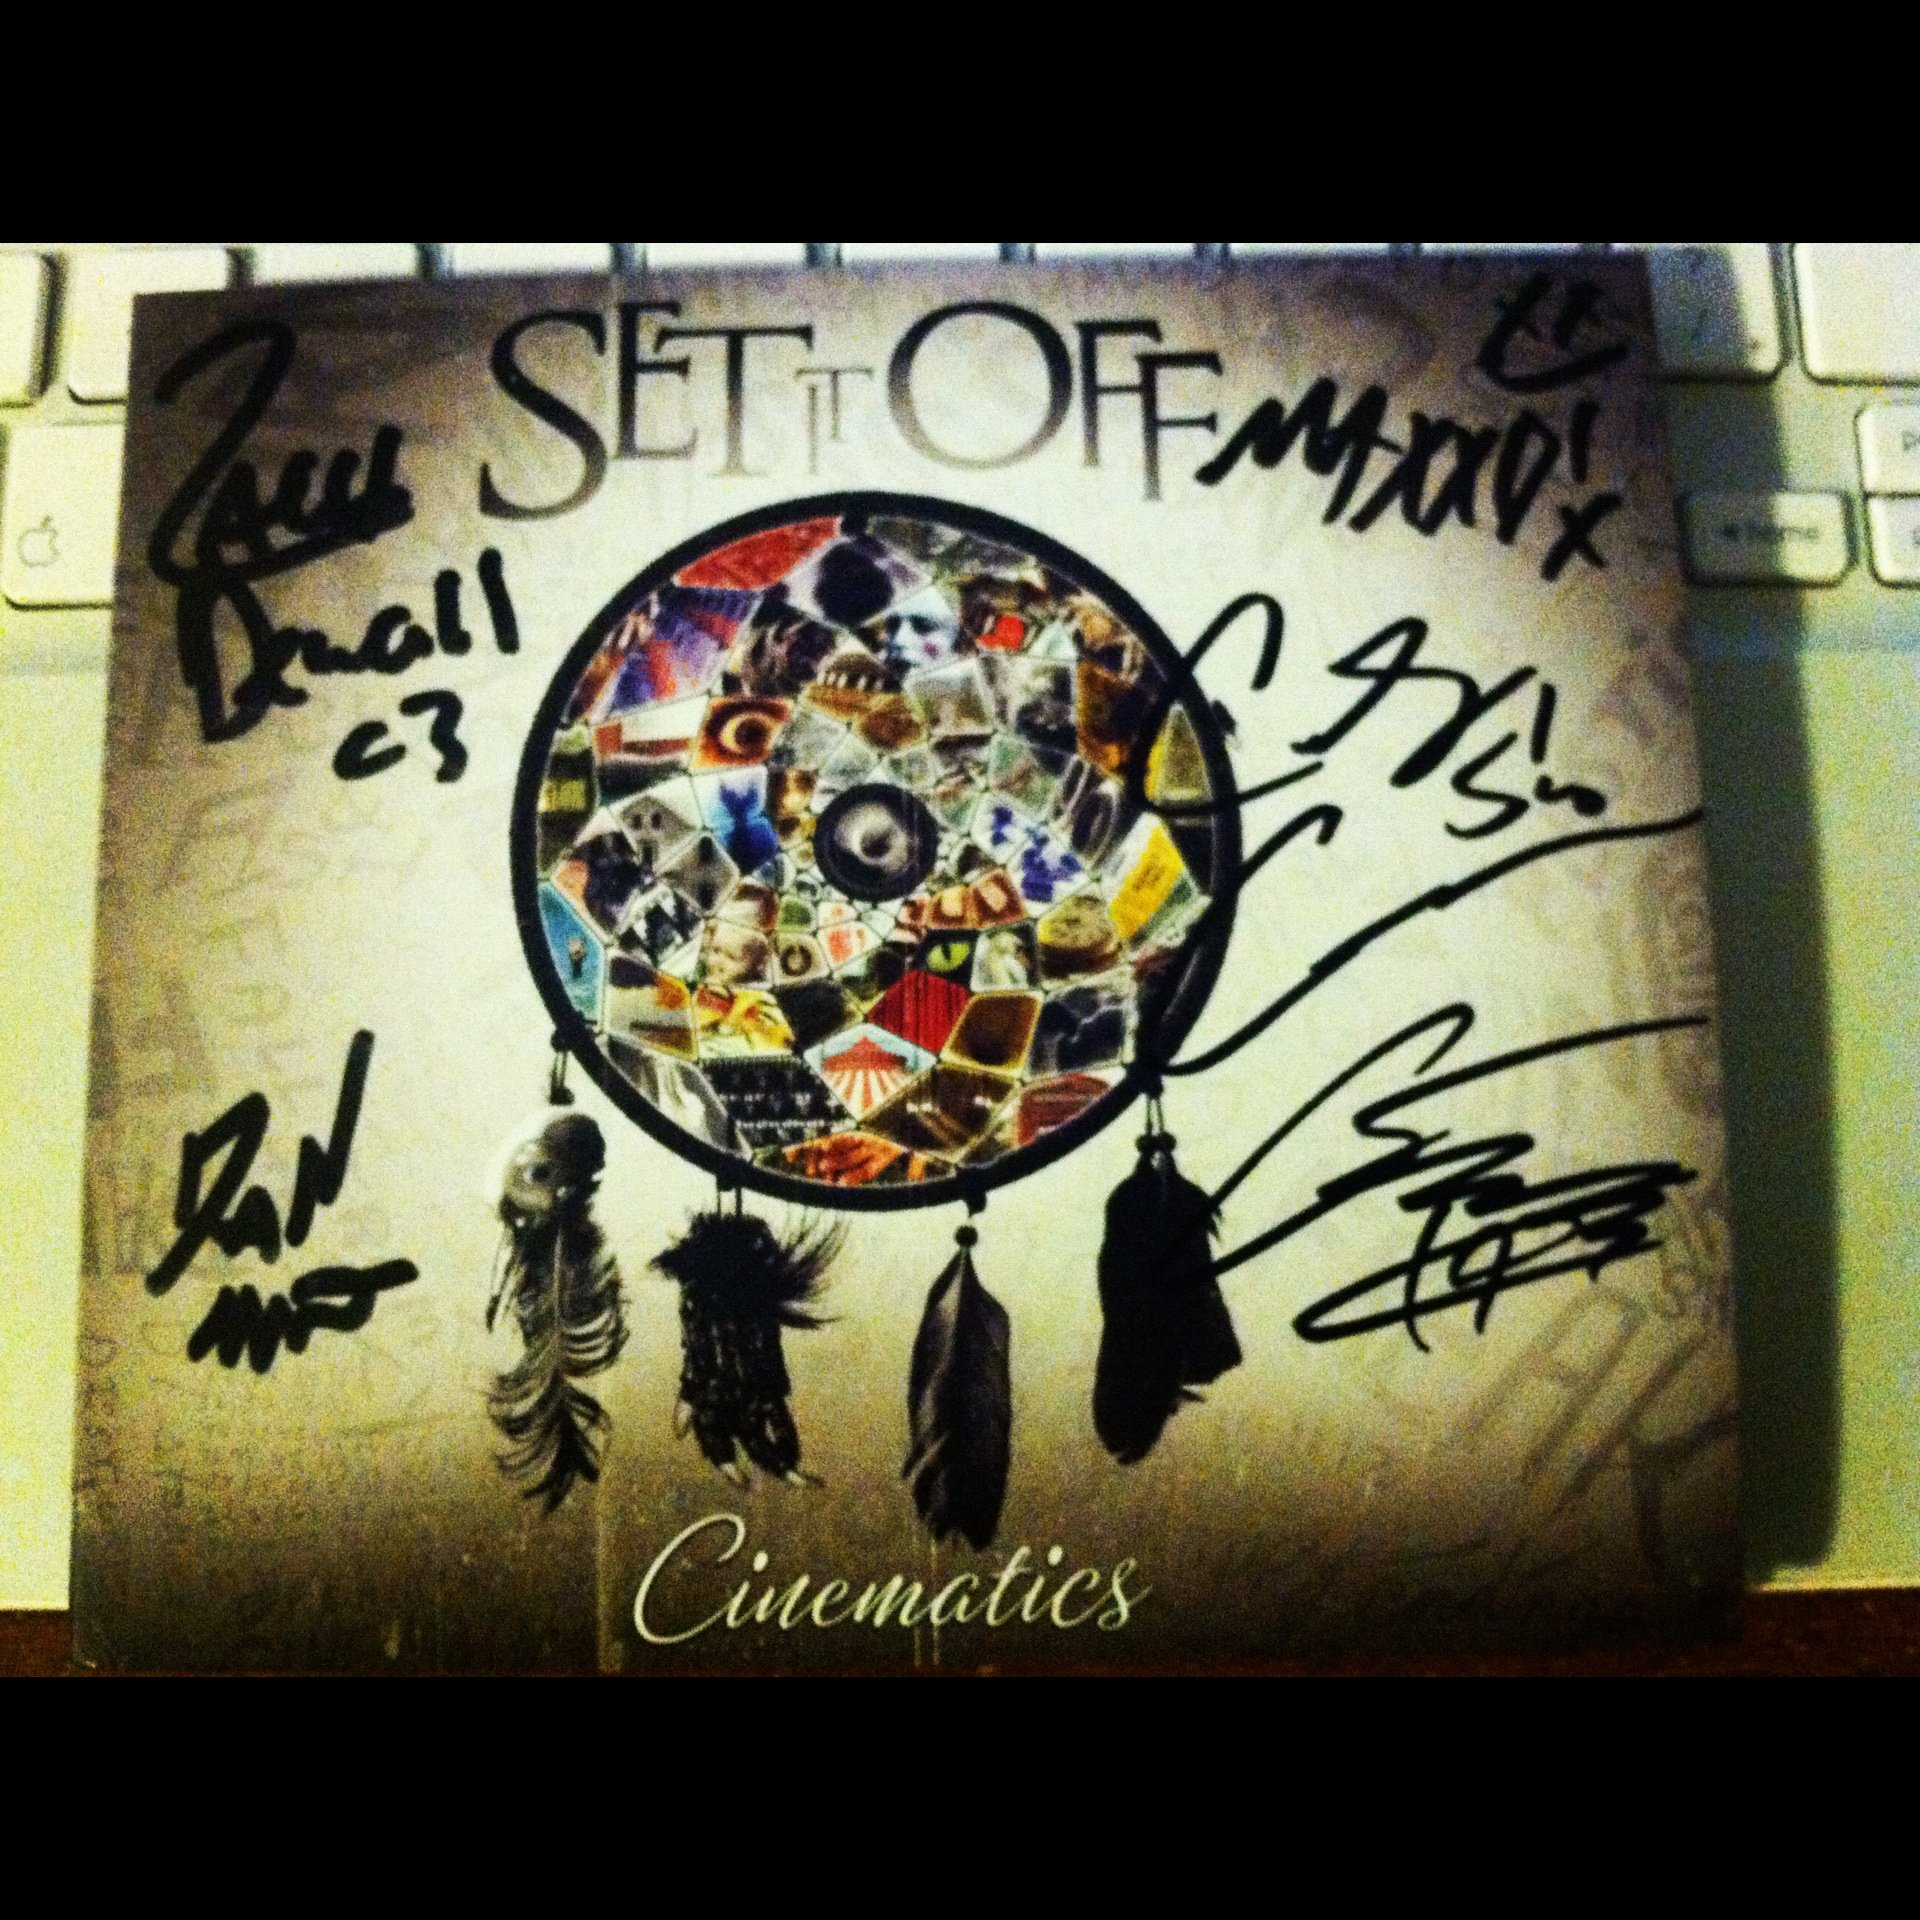 Signed copy of Cinematics from Set It Off